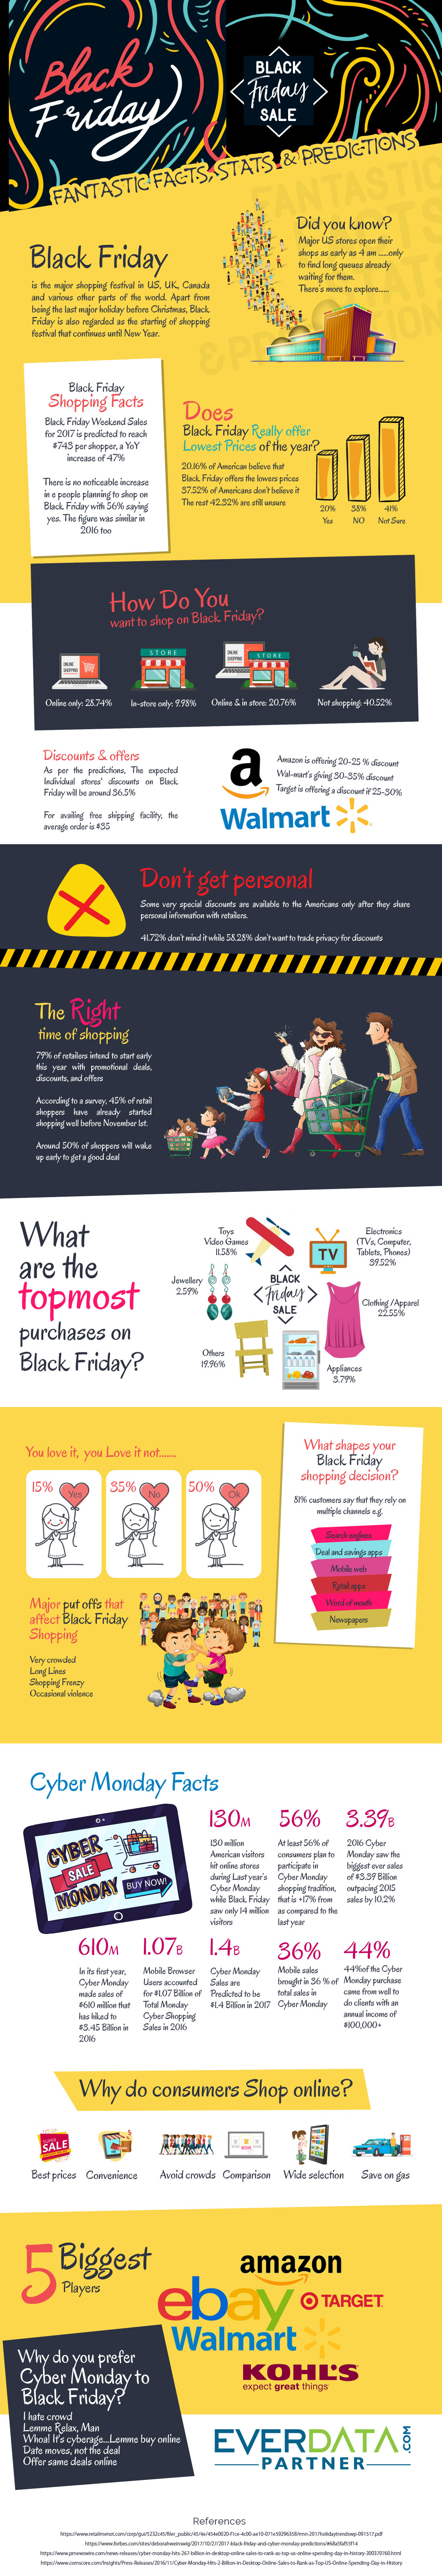 Changing Character of Black Friday: In-Store Vs Online Shopping [Infographic]